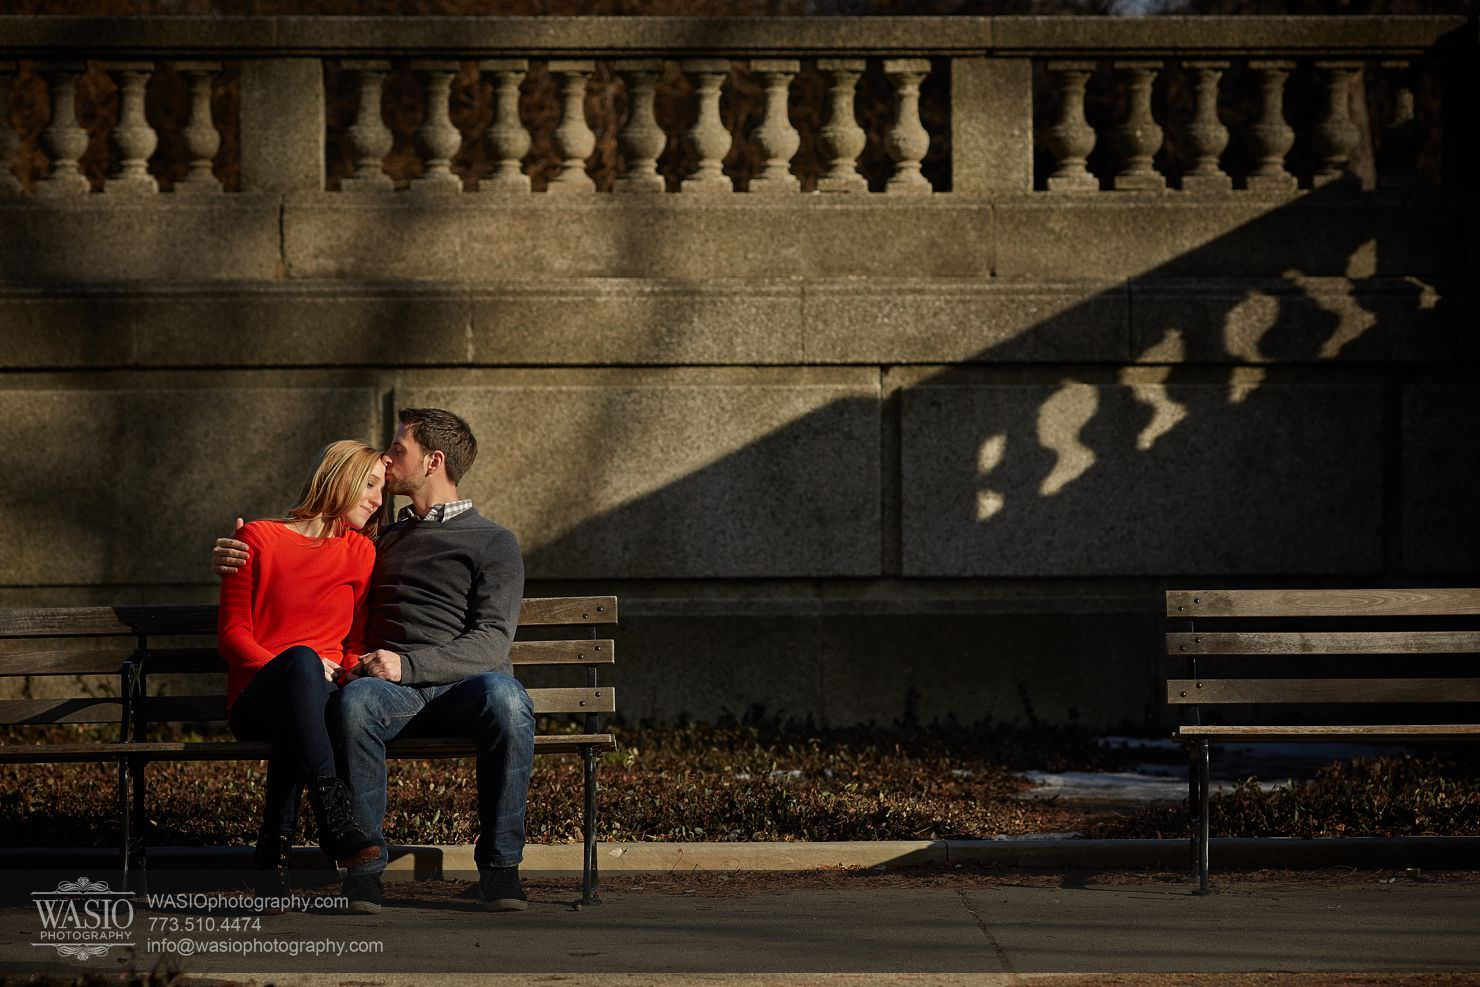 001_Chicago-Winter-Engagement_Courtney-Danny Chicago Winter Engagement - Courtney + Danny